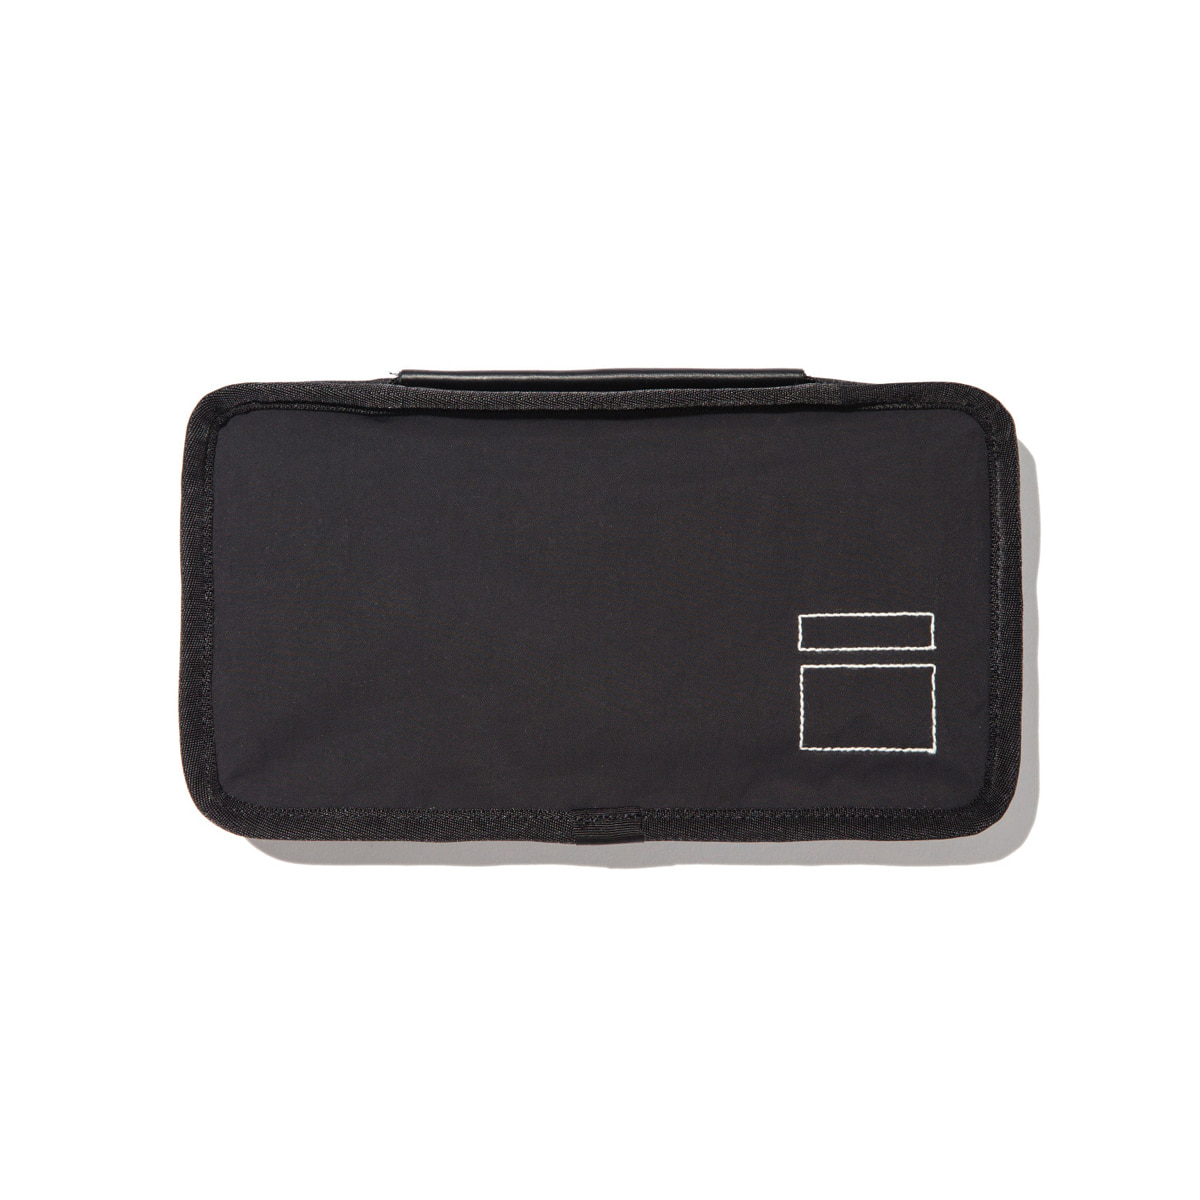 [BLANKOF] CLG 01 PST PASSPORT CASE 'BLACK'